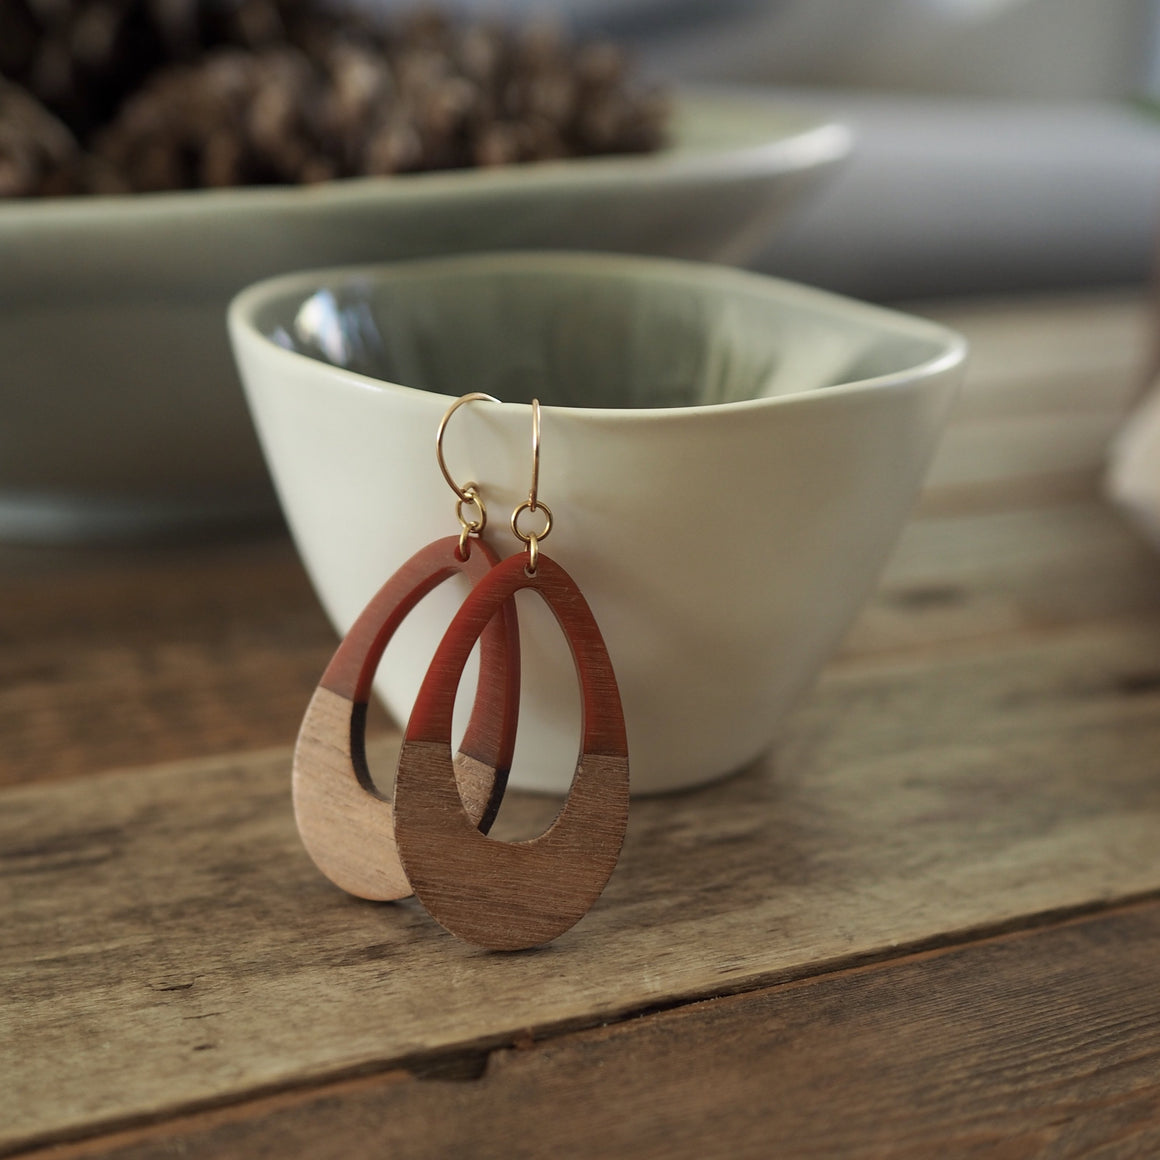 Russet Resin and Wood Earrings by Nancy Wallis Designs